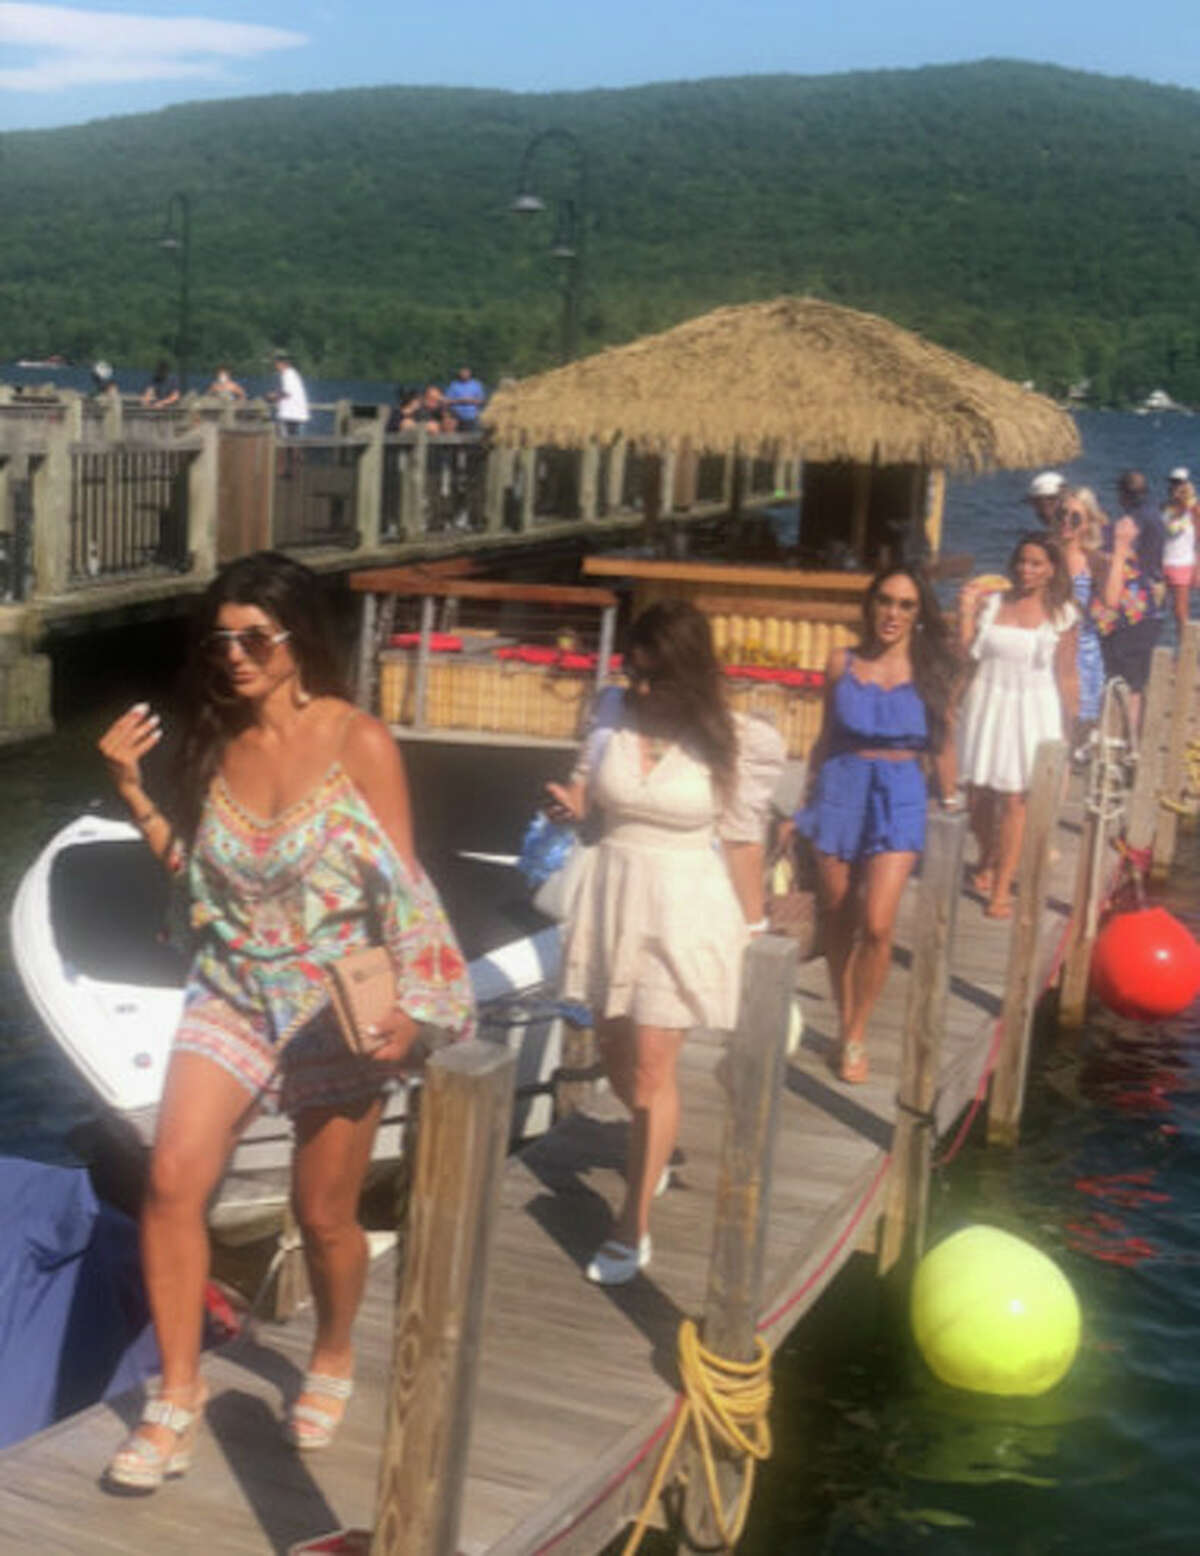 """Cast members of """"The Real Housewives of New Jersey"""" reality series disembark after a cruise on Lake George last summer with The Tiki Tours. (Nancy Hart/The Tiki Tours.)"""